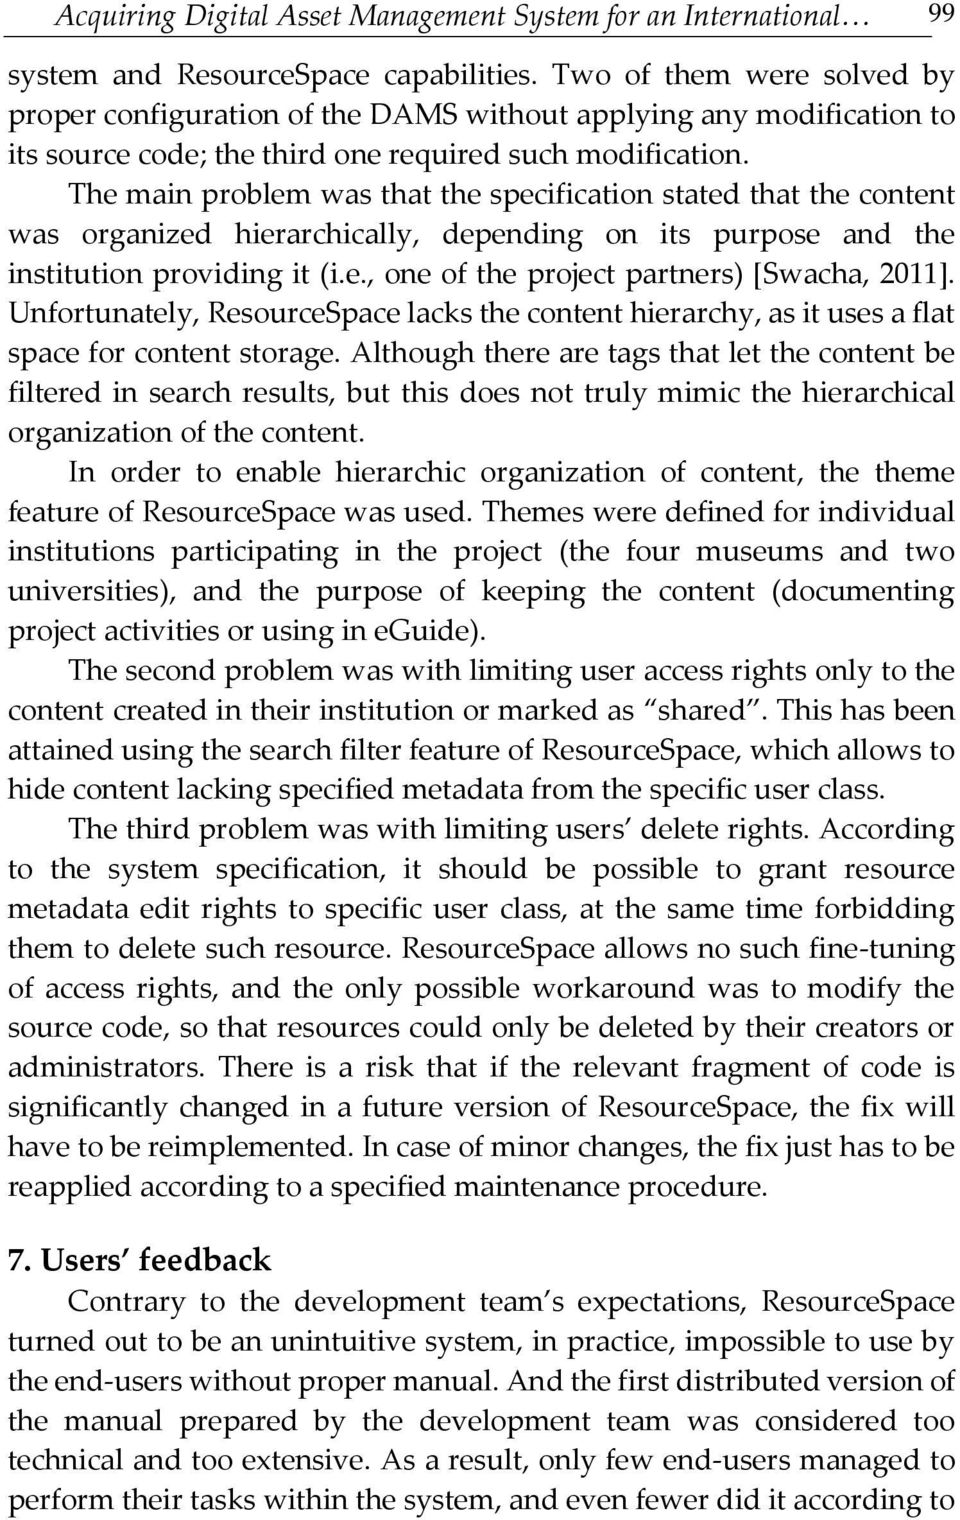 The main problem was that the specification stated that the content was organized hierarchically, depending on its purpose and the institution providing it (i.e., one of the project partners) [Swacha, 2011].